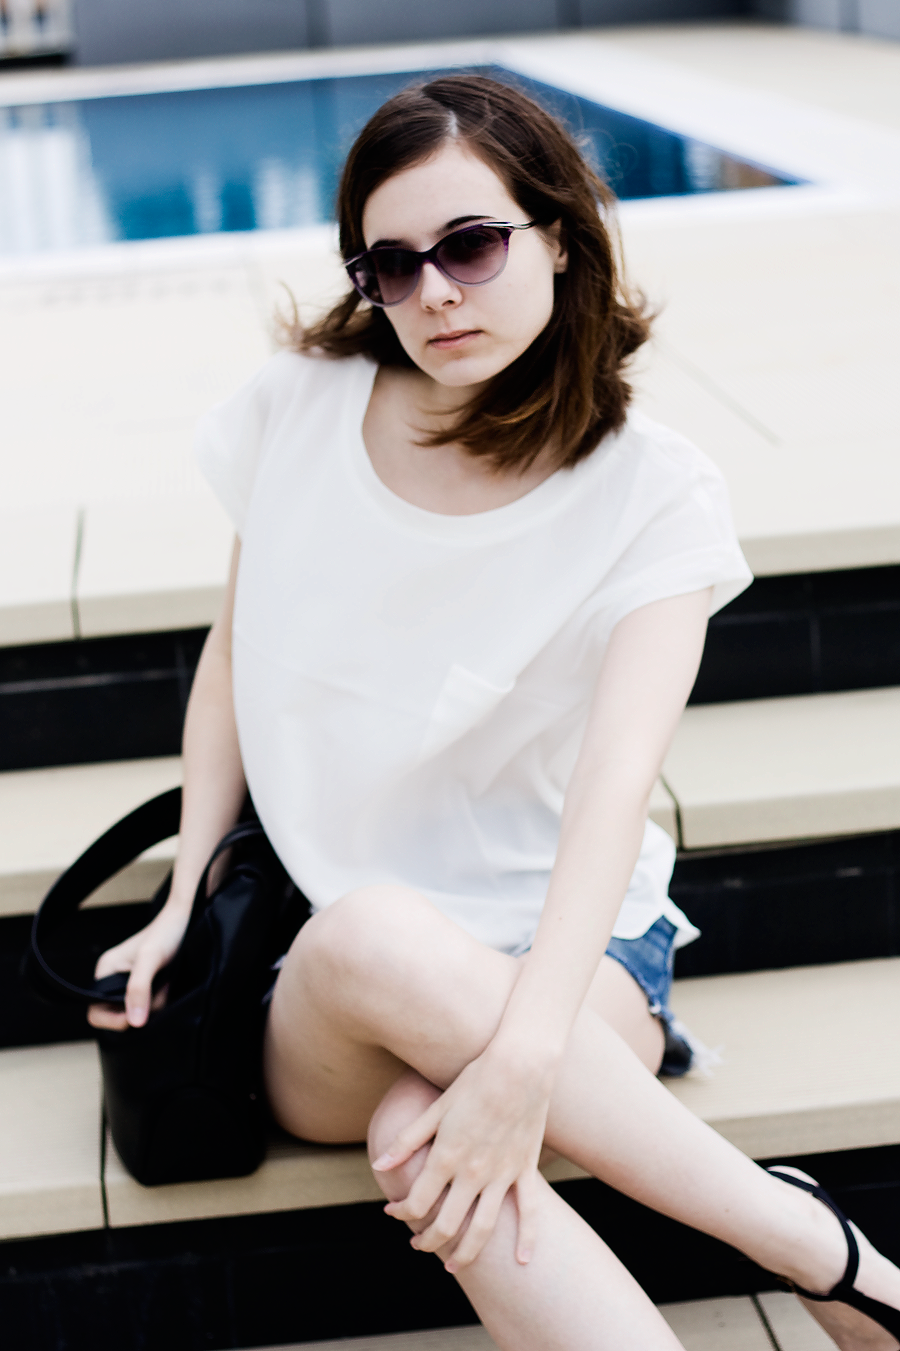 Style / Sunglasses, White Shirt, Denim Shorts / Lix Hewett